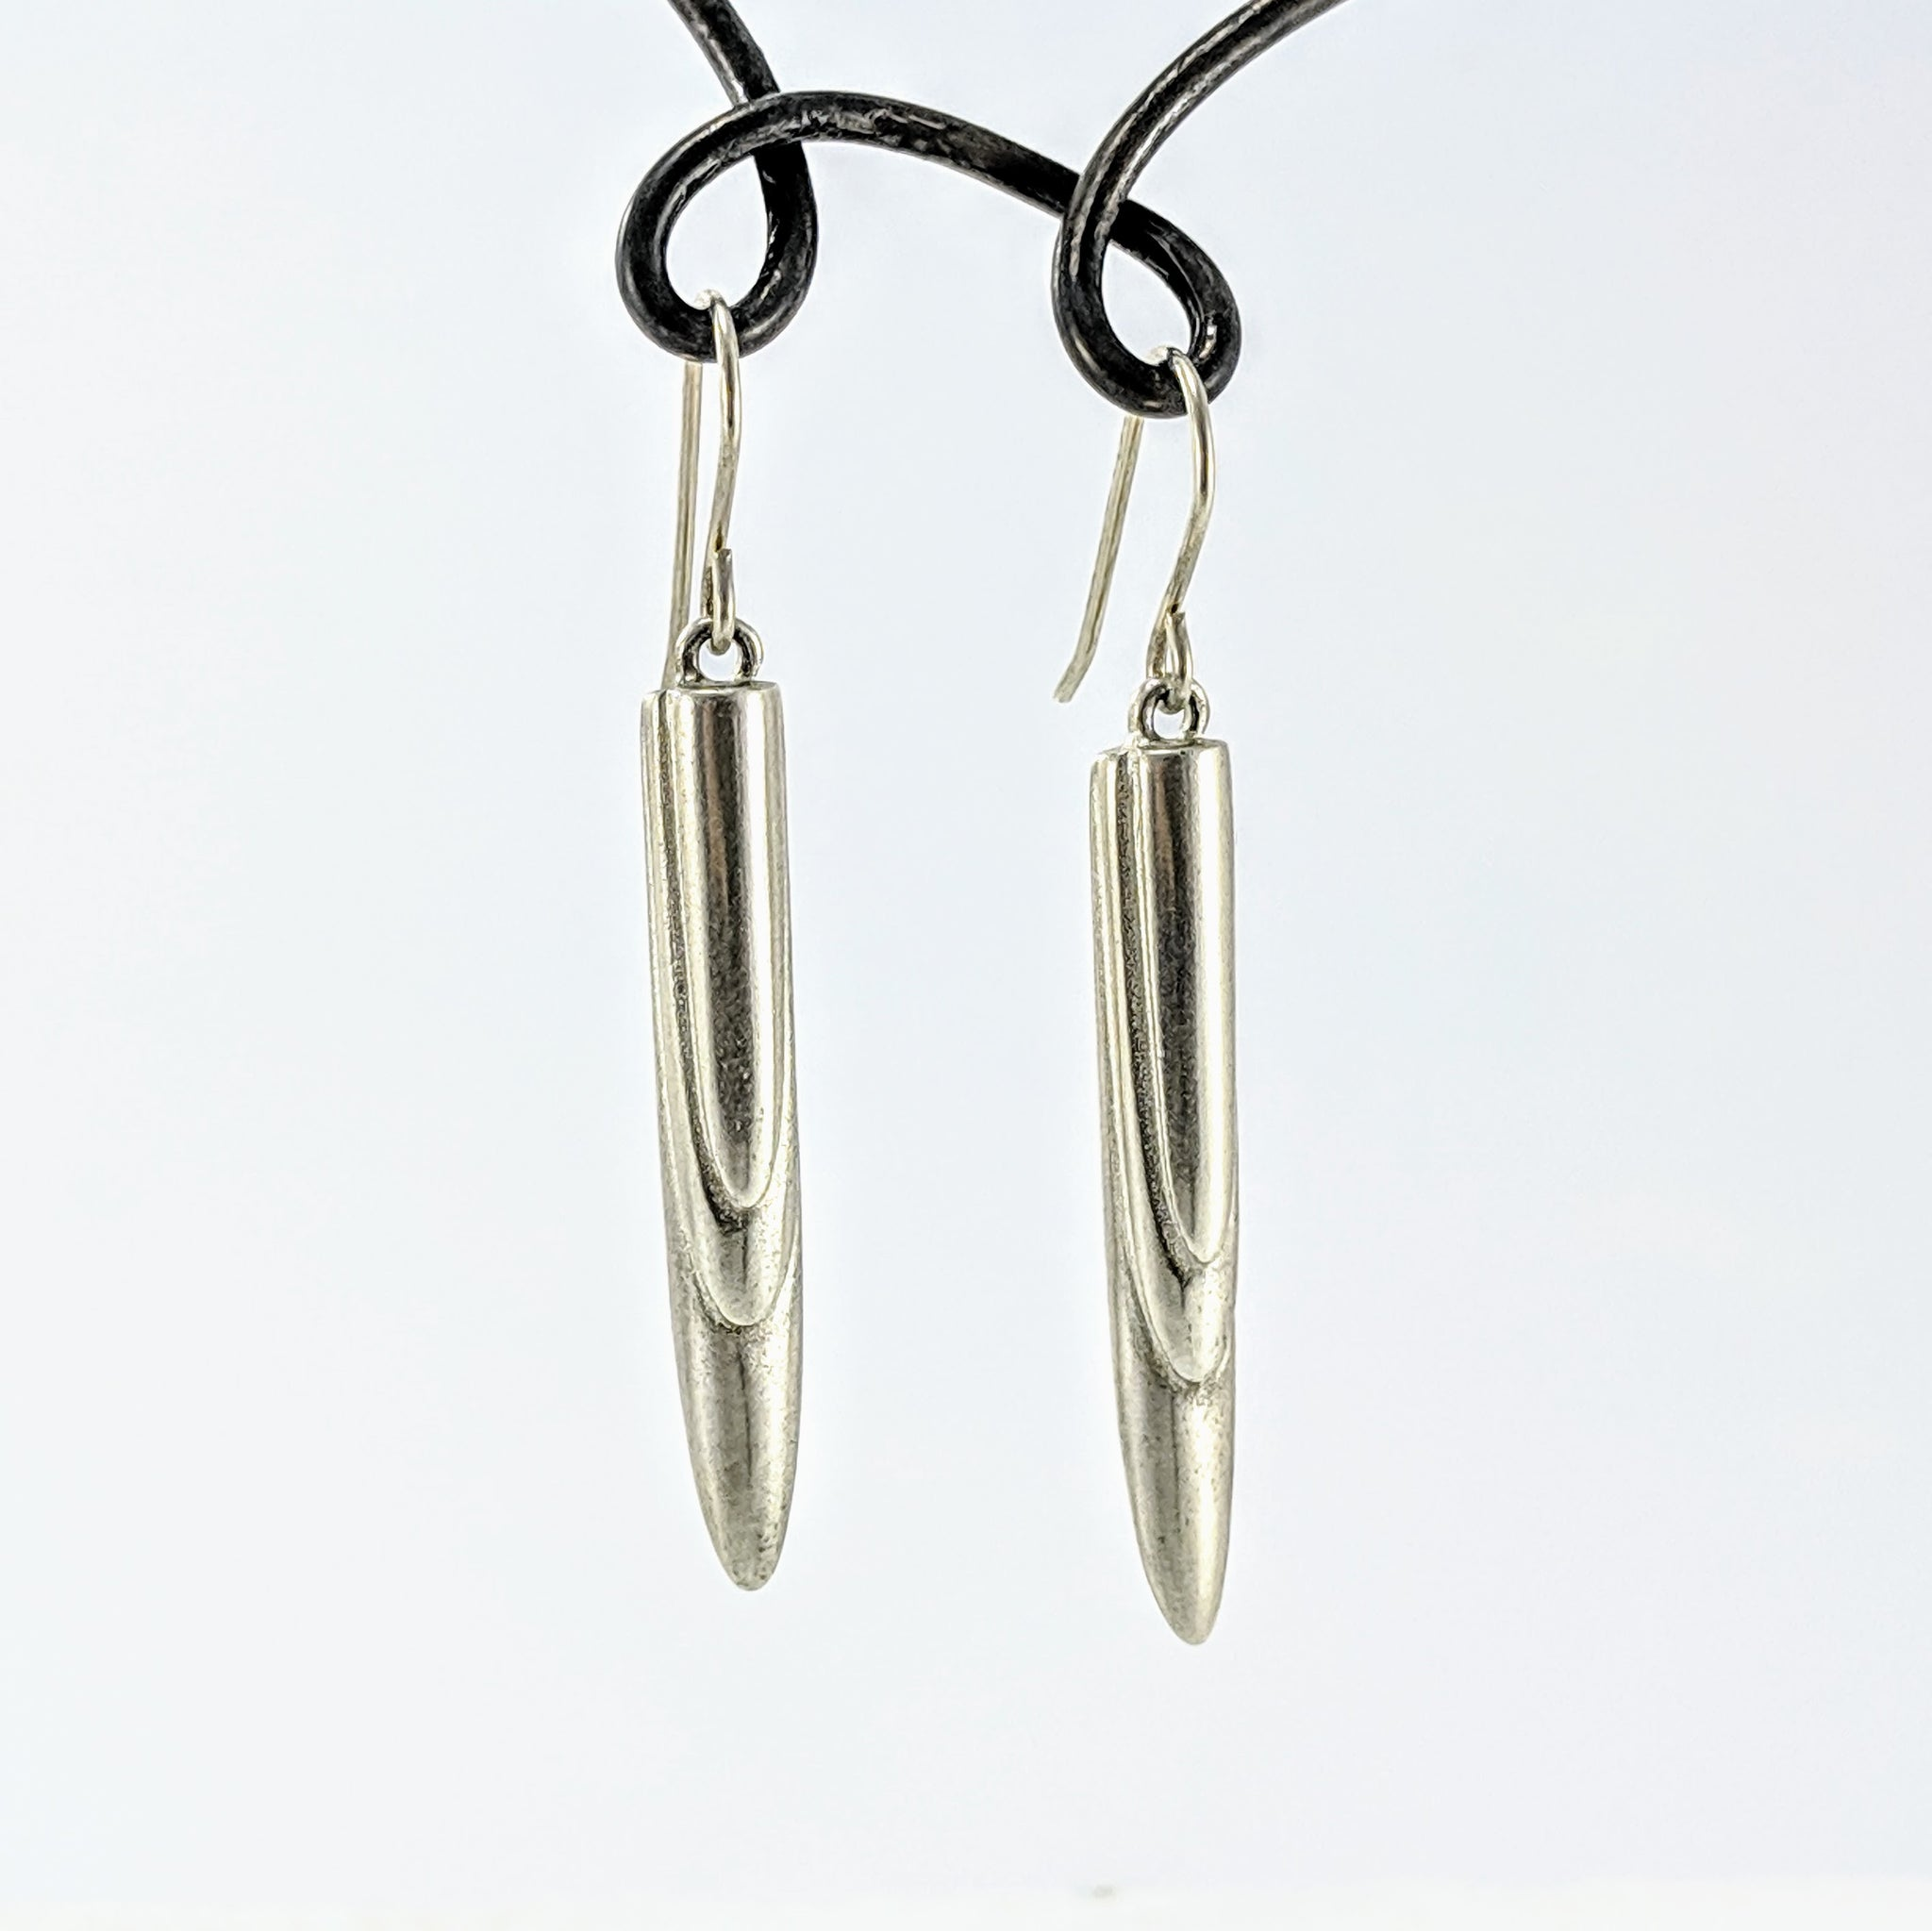 Handmade in New Zealand, these handmade deco earrings by Emily Efford Jewellery are silver with soft rounded scallops